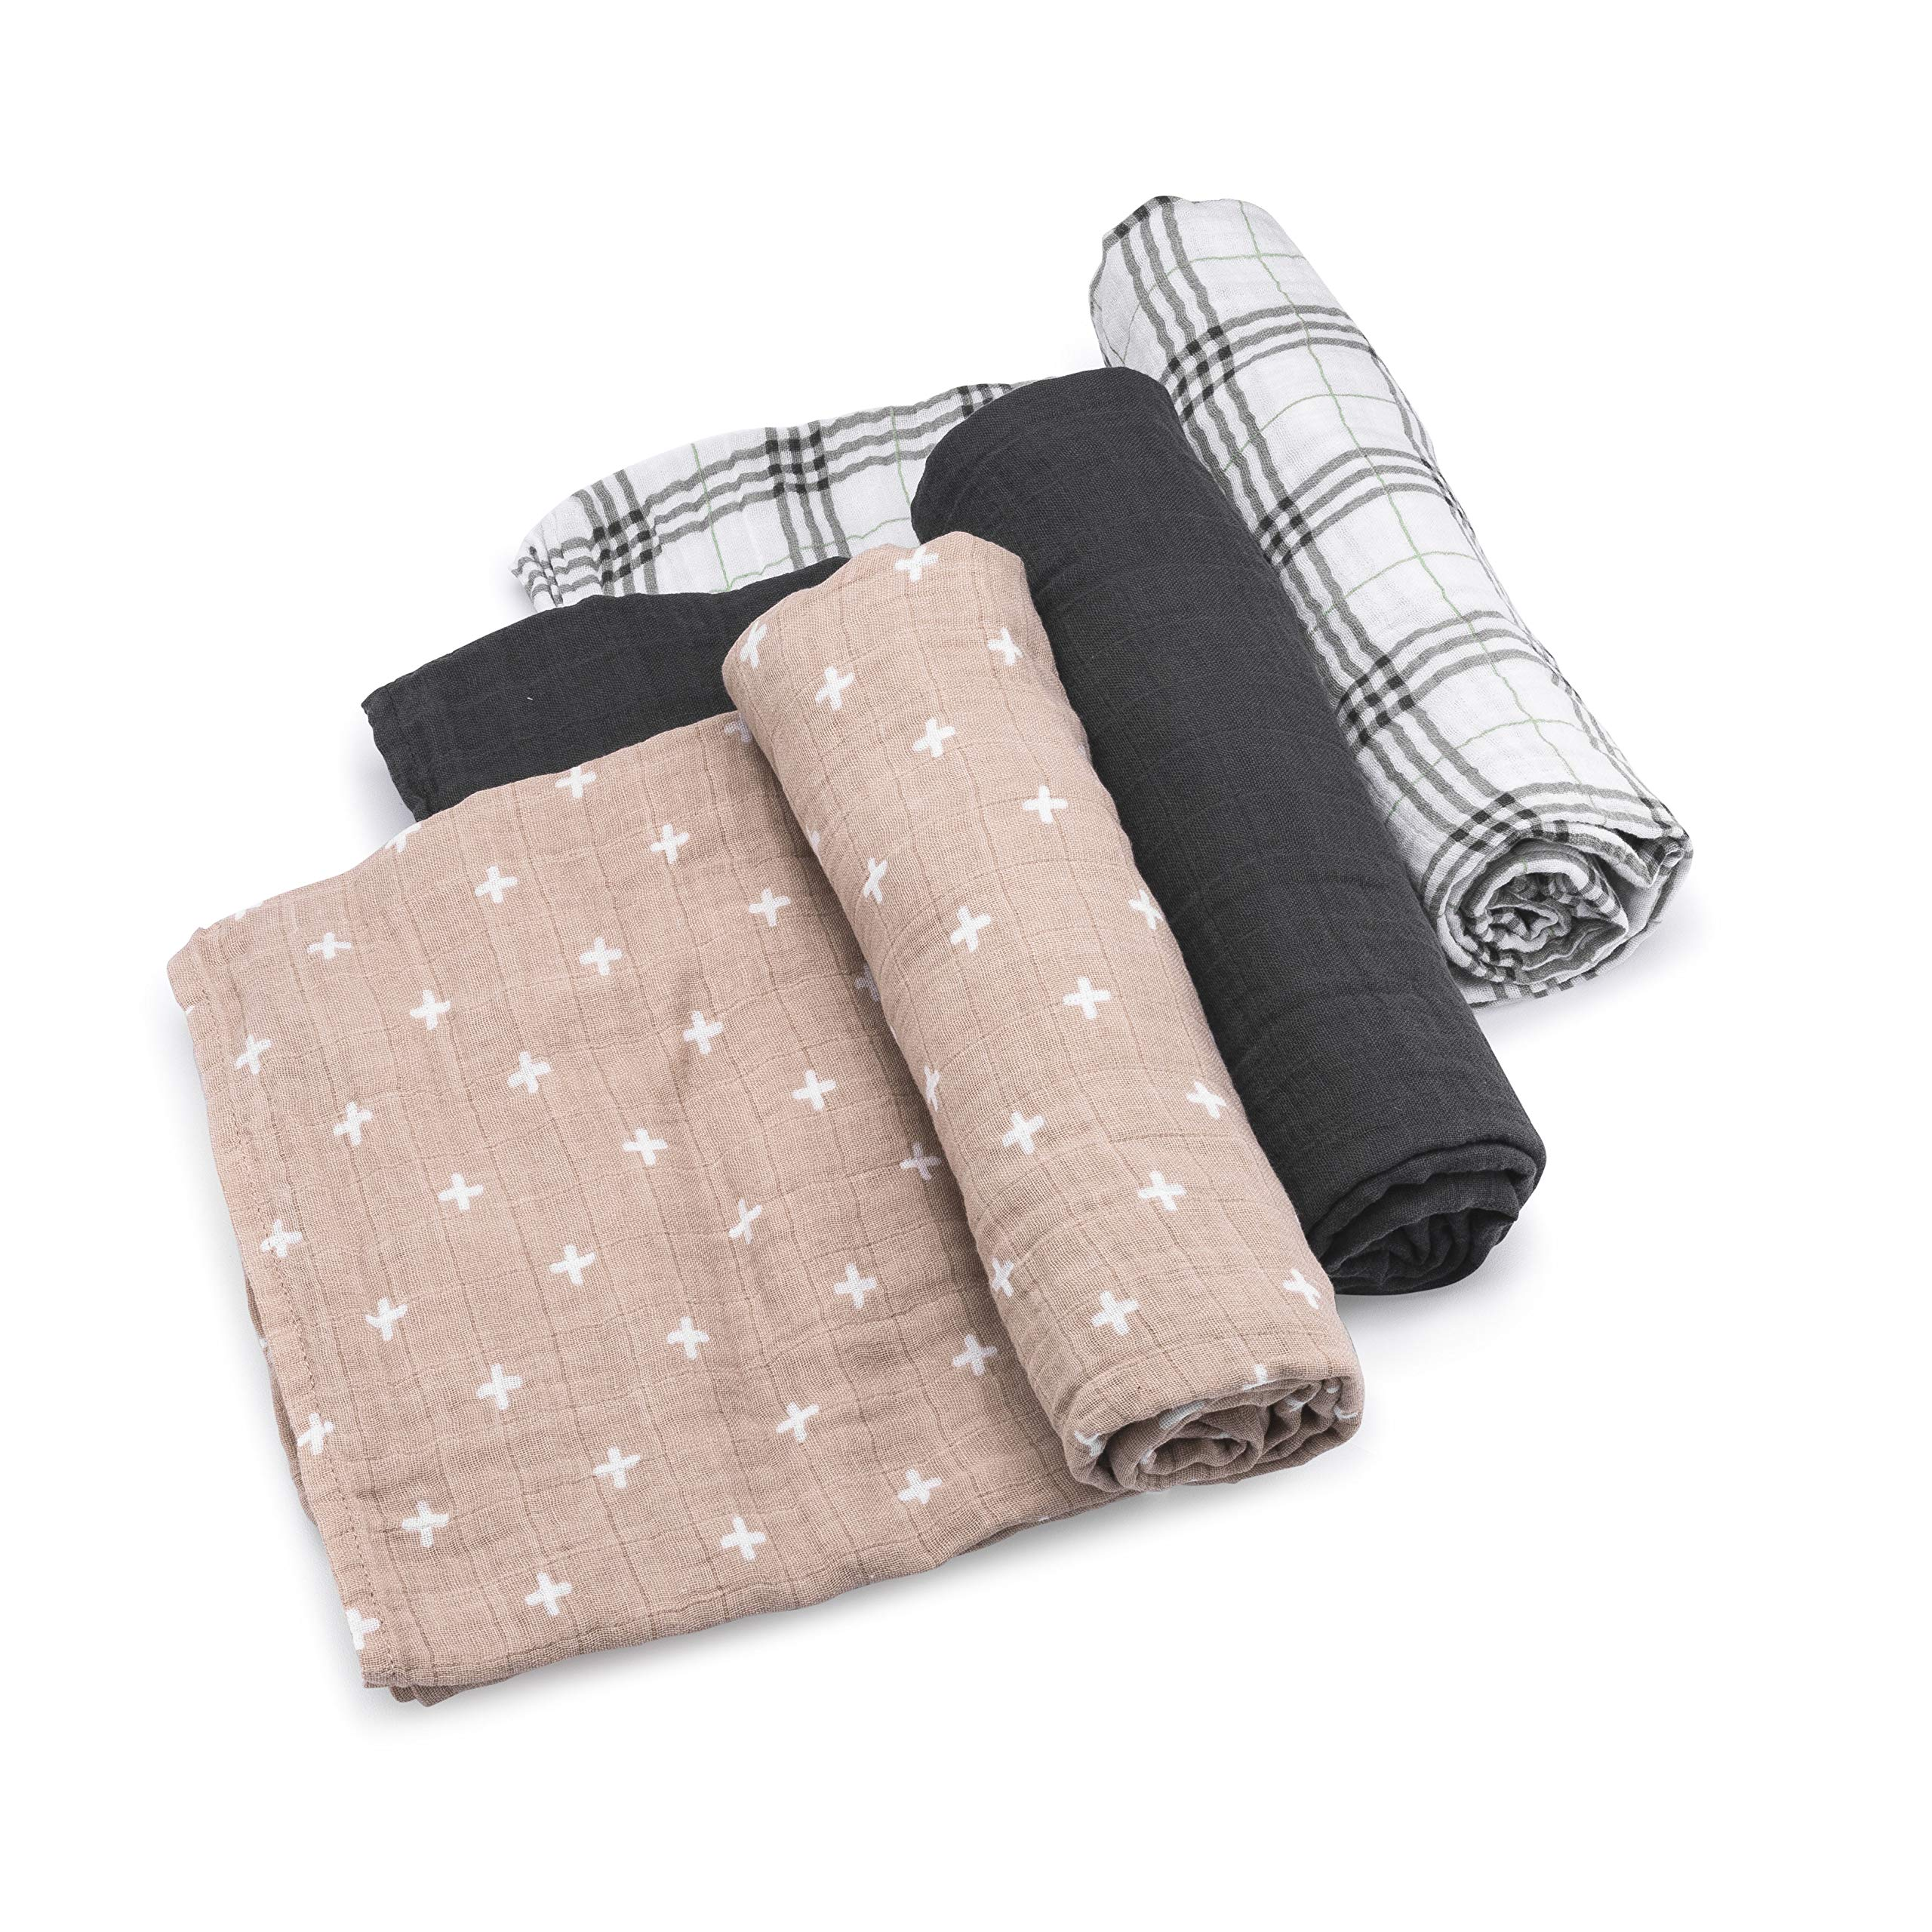 Parker Baby Swaddle Blankets - 3 Pack of 100% Cotton Muslin Swaddle Blankets for Baby Boys and Girls - Unisex/Gender Neutral -''Classics Set'' by Parker Baby Co.